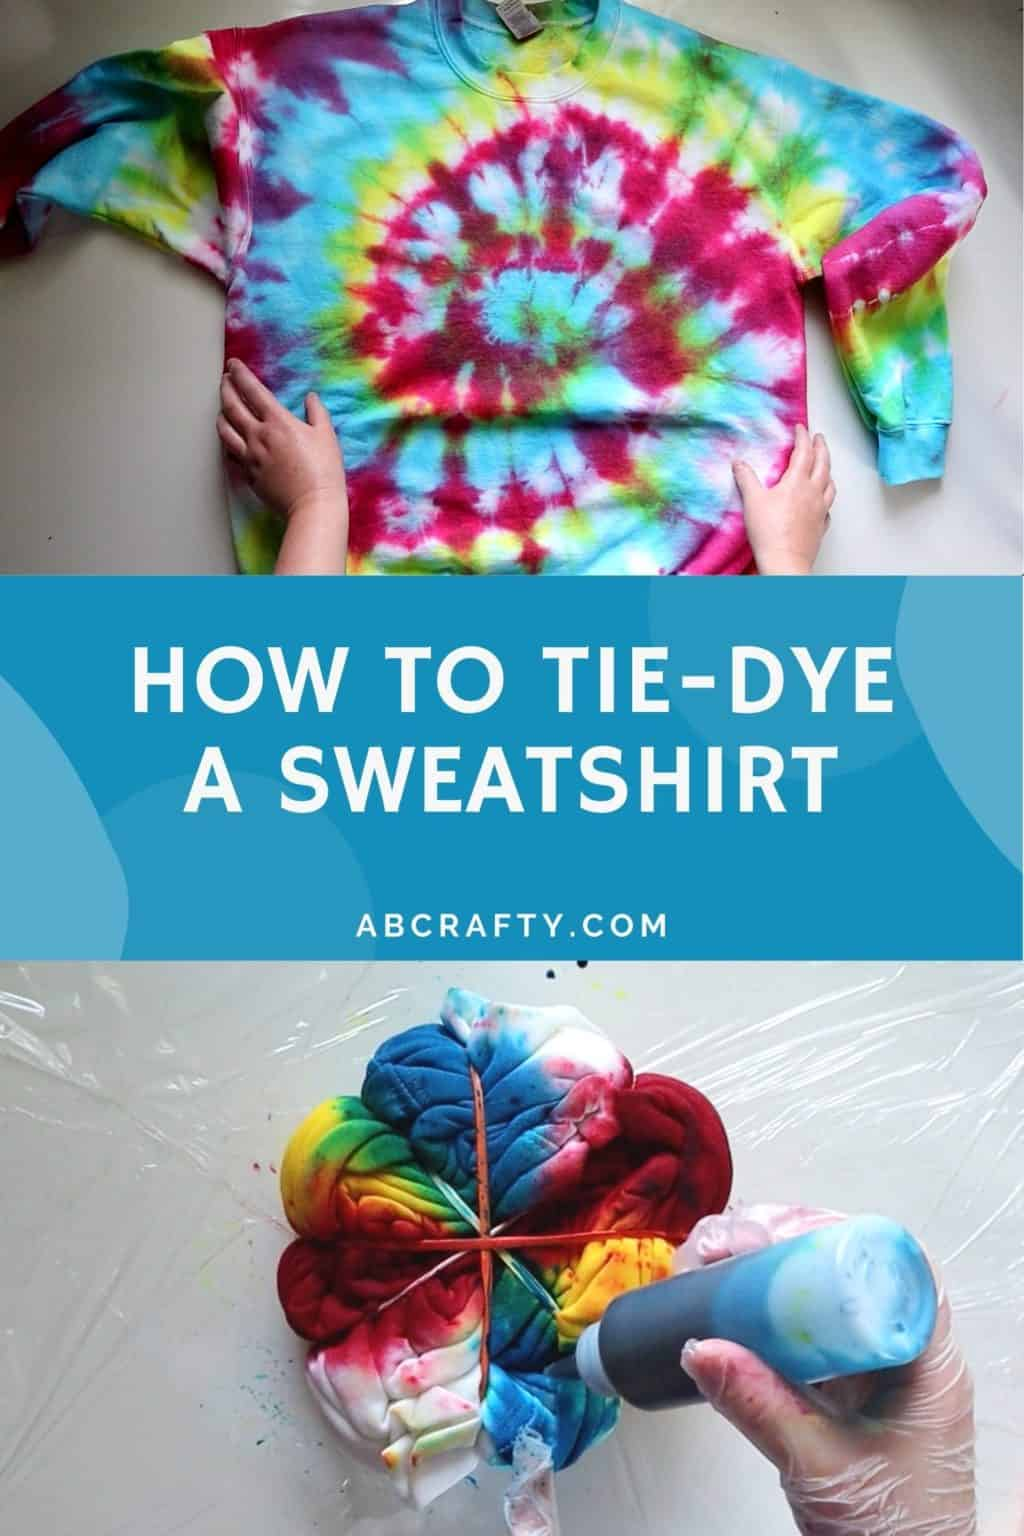 """one image touching a rainbow tie dye sweatshirt with the bottom image pouring blue dye on a partially tie dyed sweatshirt with the title """"how to tie-dye a sweatshirt"""""""